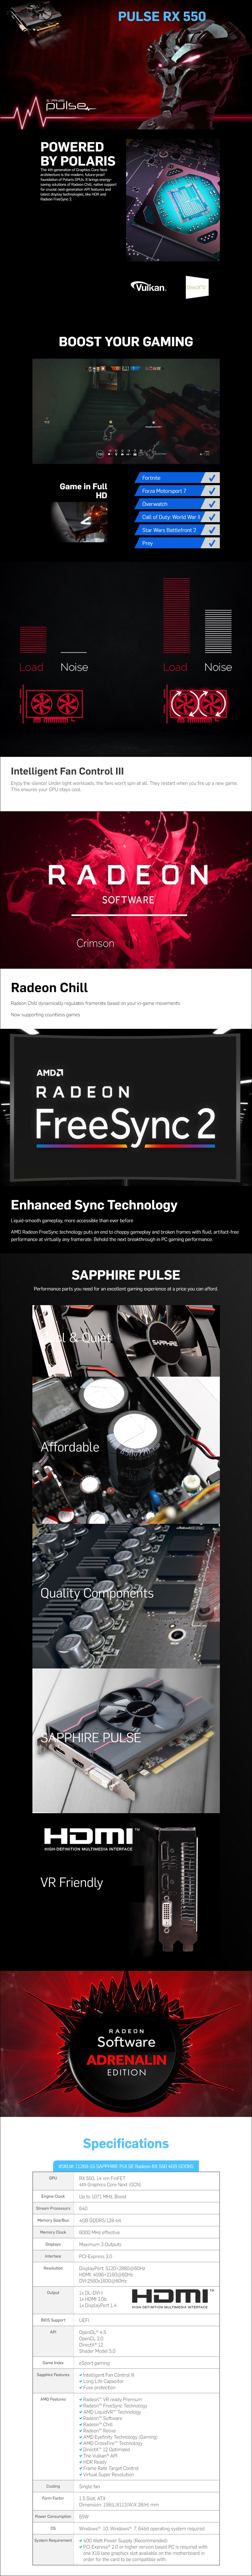 Sapphire Radeon RX 550 Pulse 4GB Video Card - Overview 1